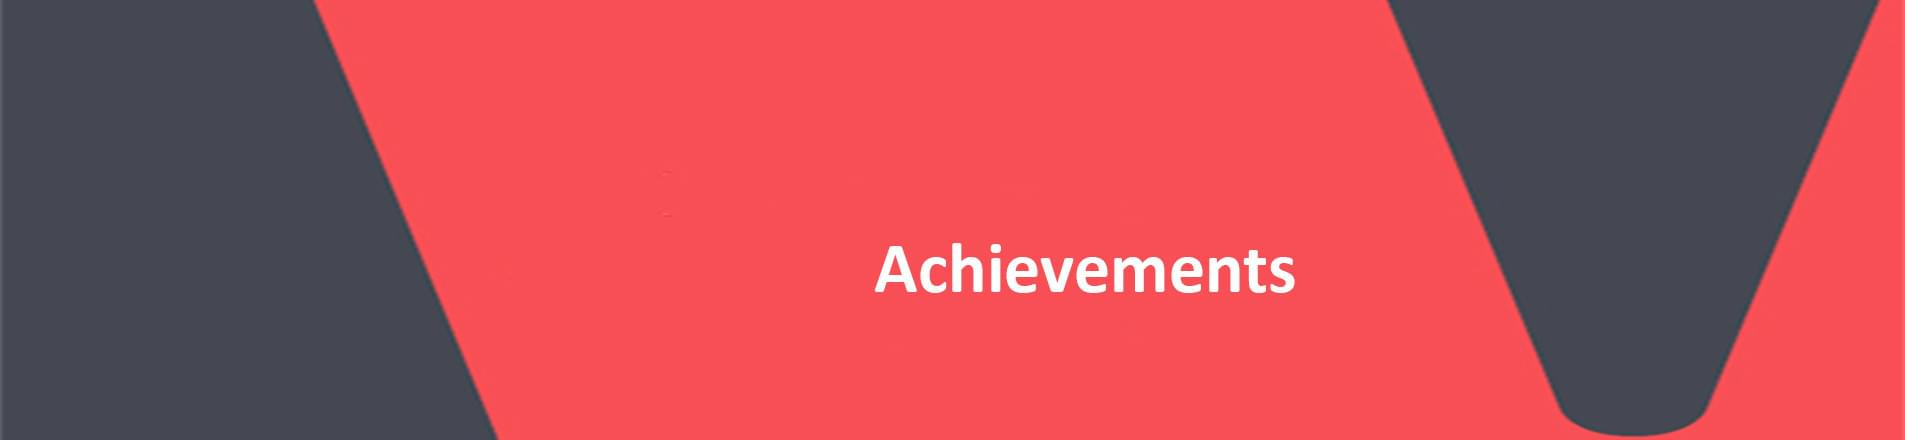 The word achievements in white on a red VERCIDA branded background